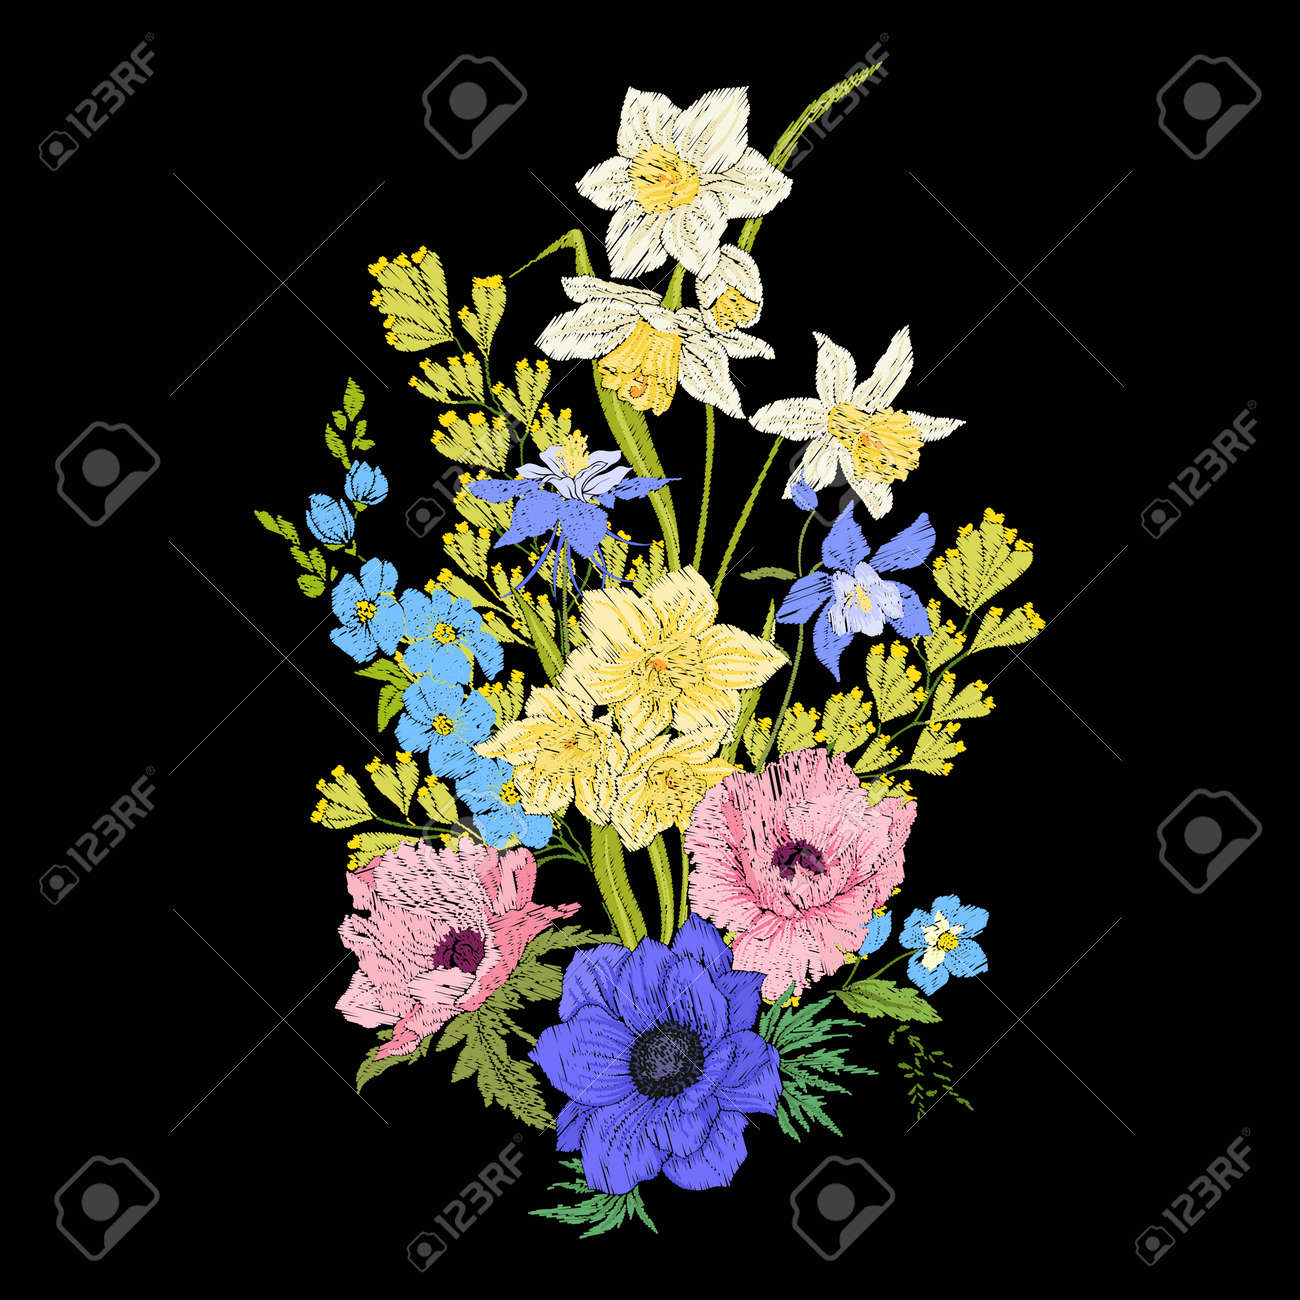 Embroidery vintage flowers bouquet of poppy daffodil anemone embroidery vintage flowers bouquet of poppy daffodil anemone stock vector 79563033 izmirmasajfo